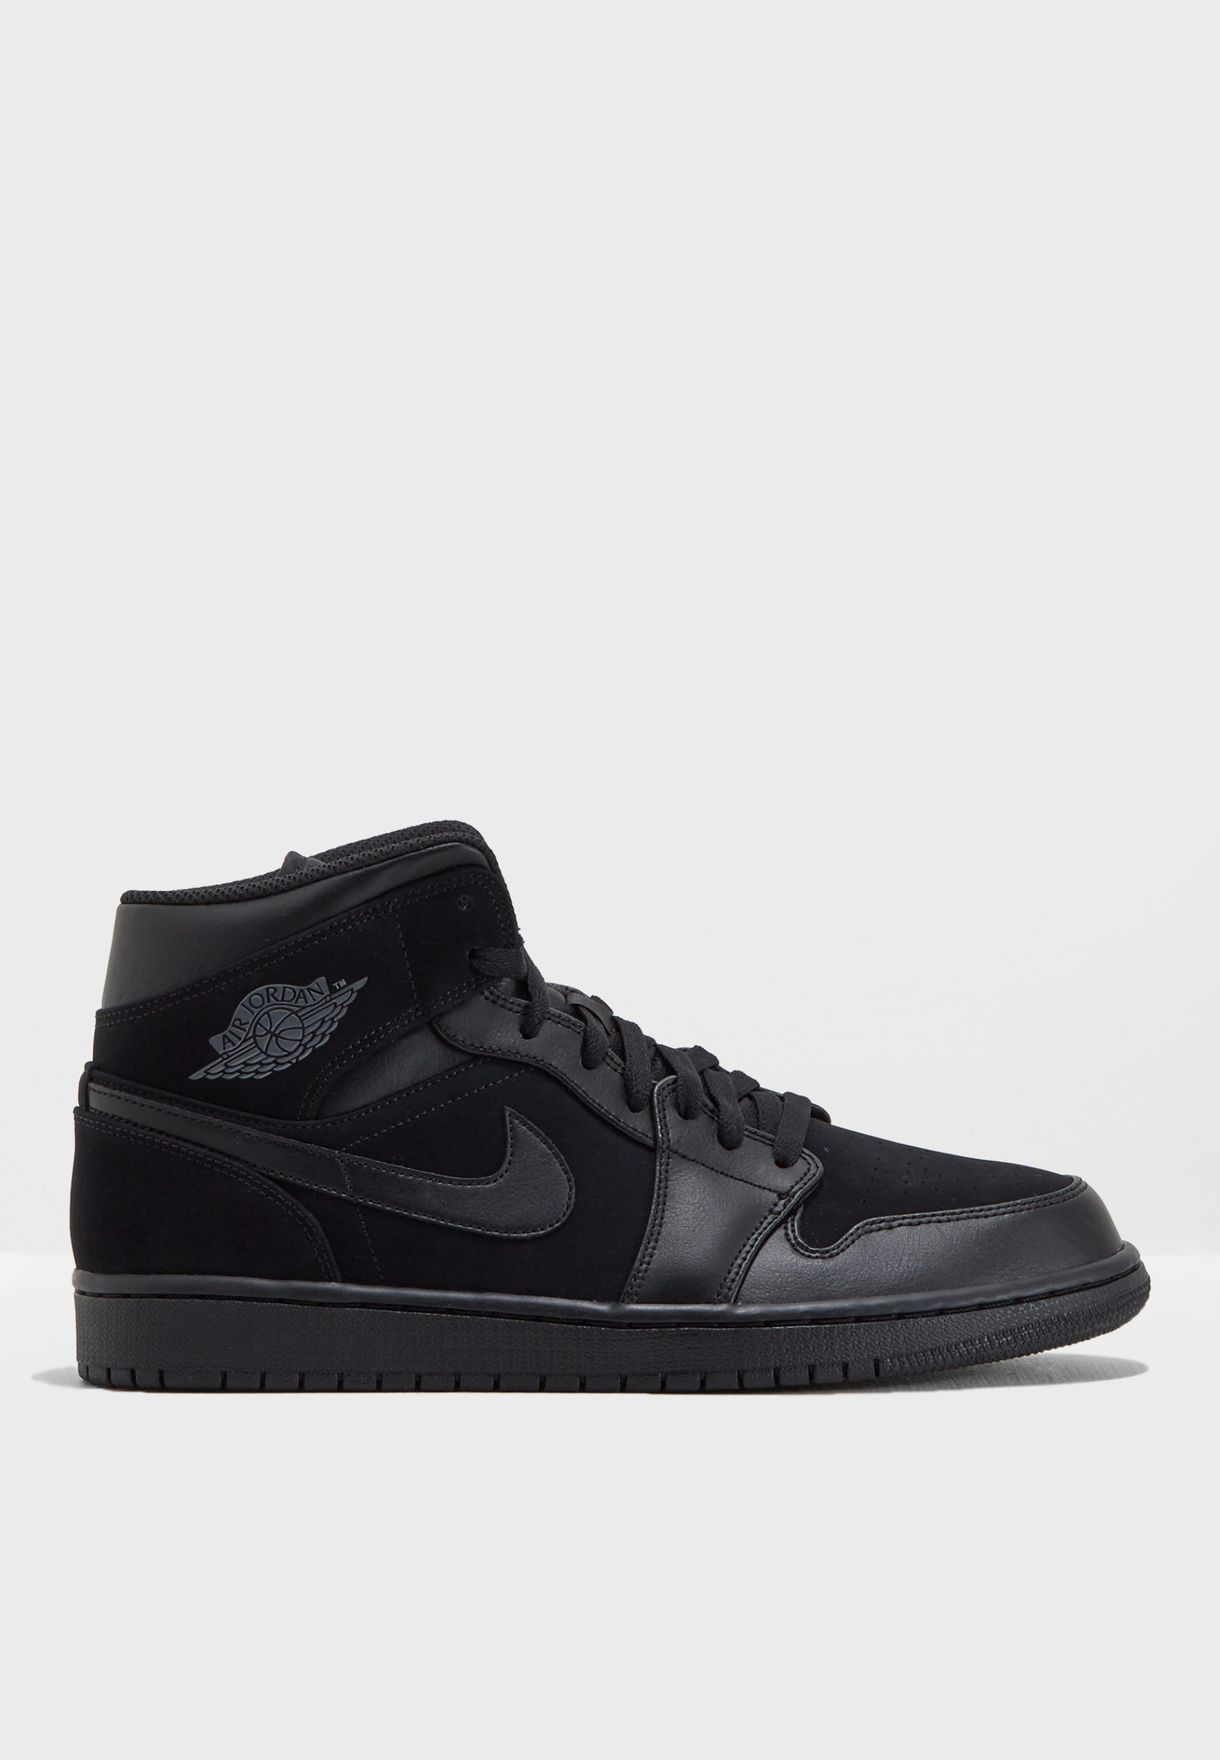 95162eafc5ca12 Shop Nike black Air Jordan 1 Mid 554724-050 for Men in Saudi ...